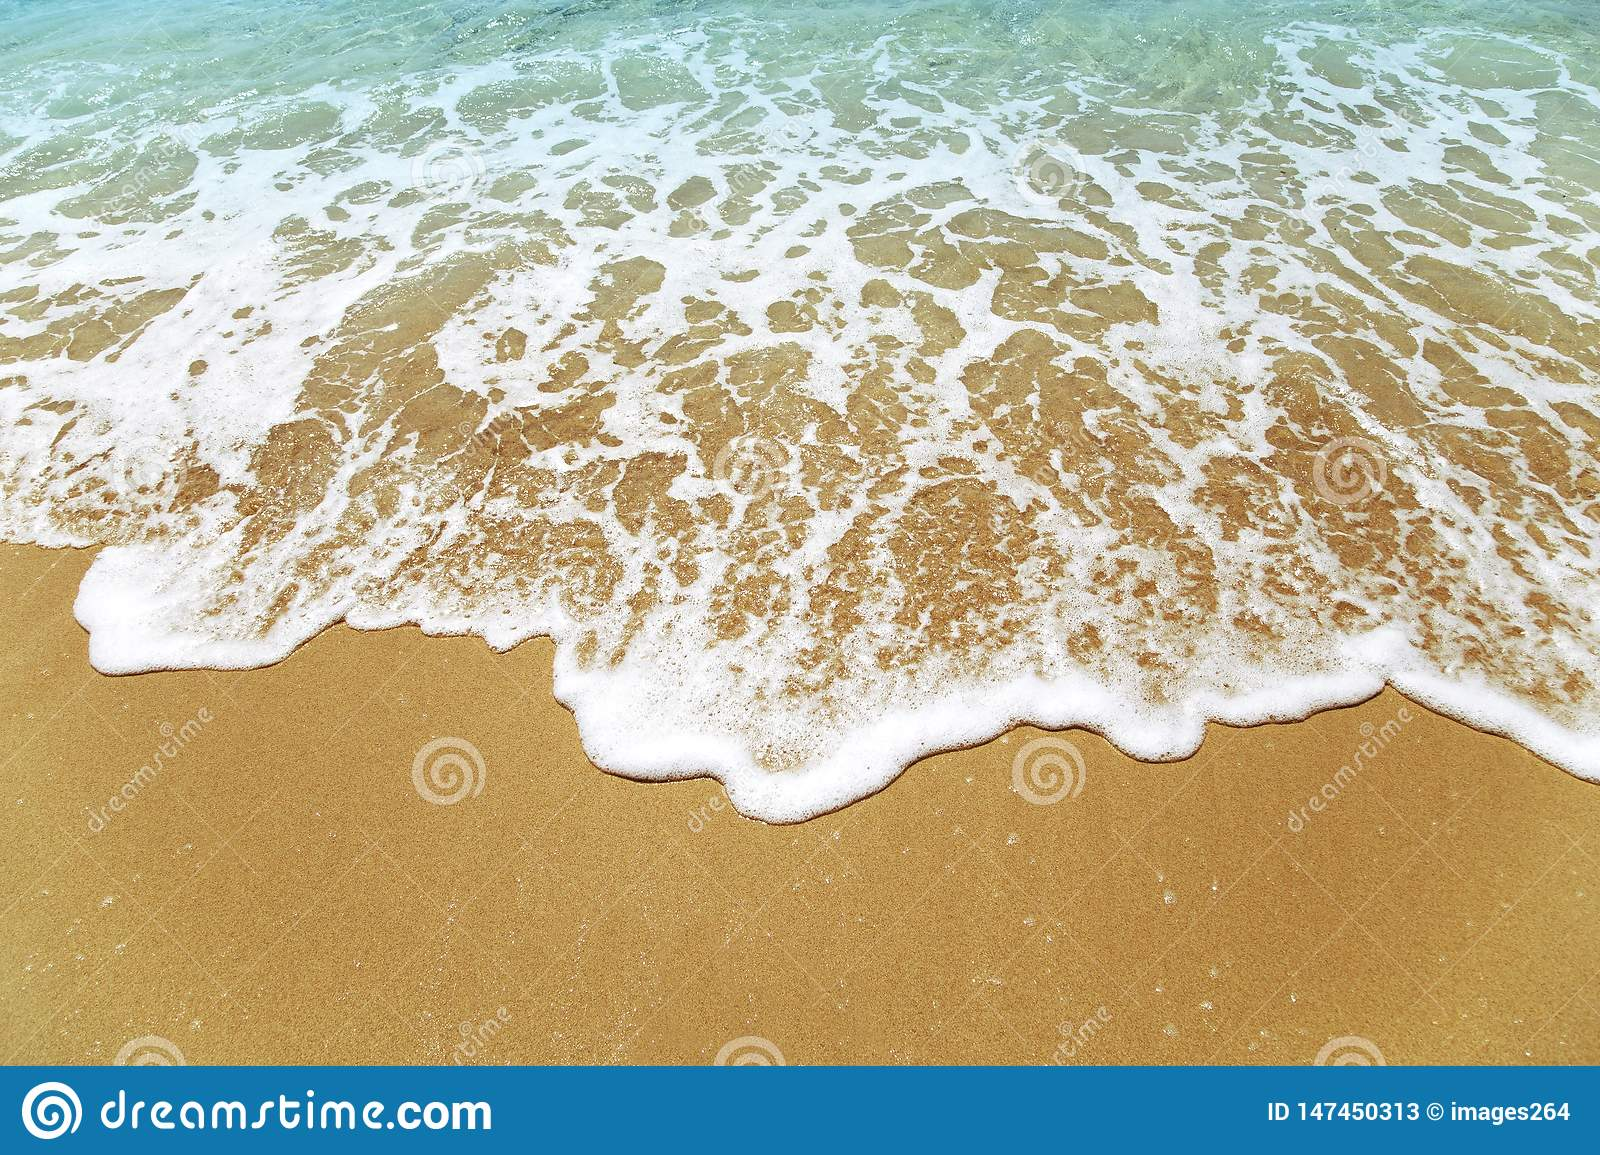 Waves on a beach